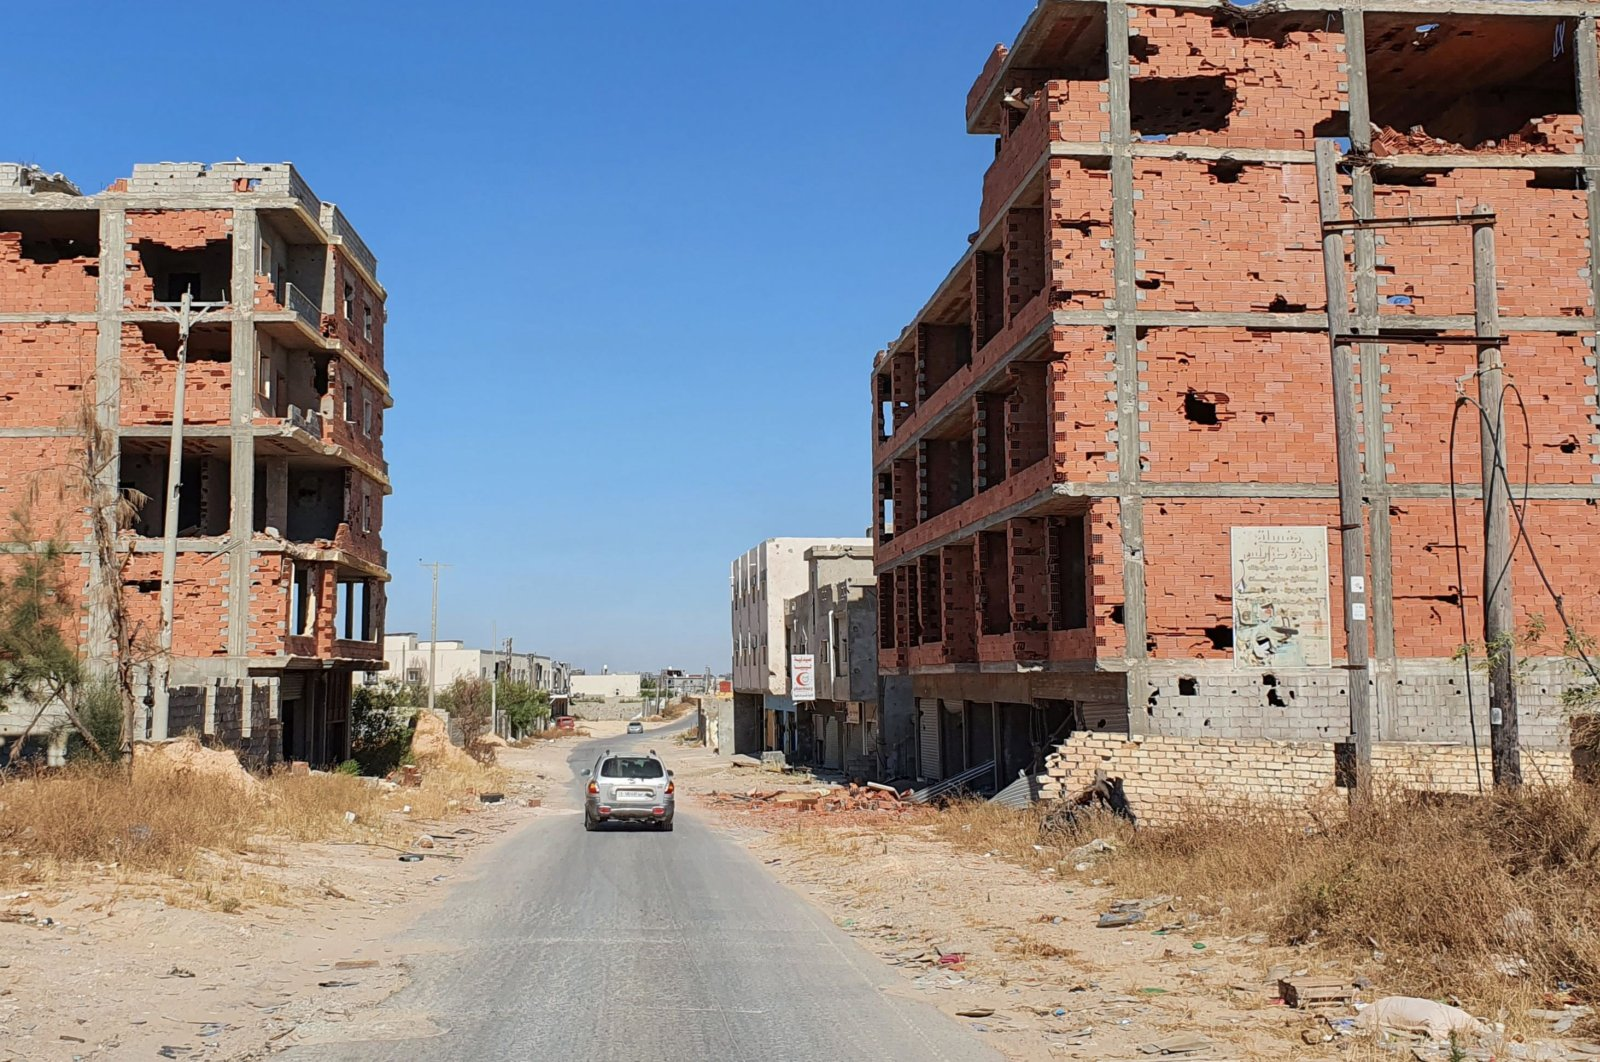 A car advances on an empty road between damaged buildings in the Salaheddin district south of the Libyan capital Tripoli, on June 21, 2020 (AFP Photo)